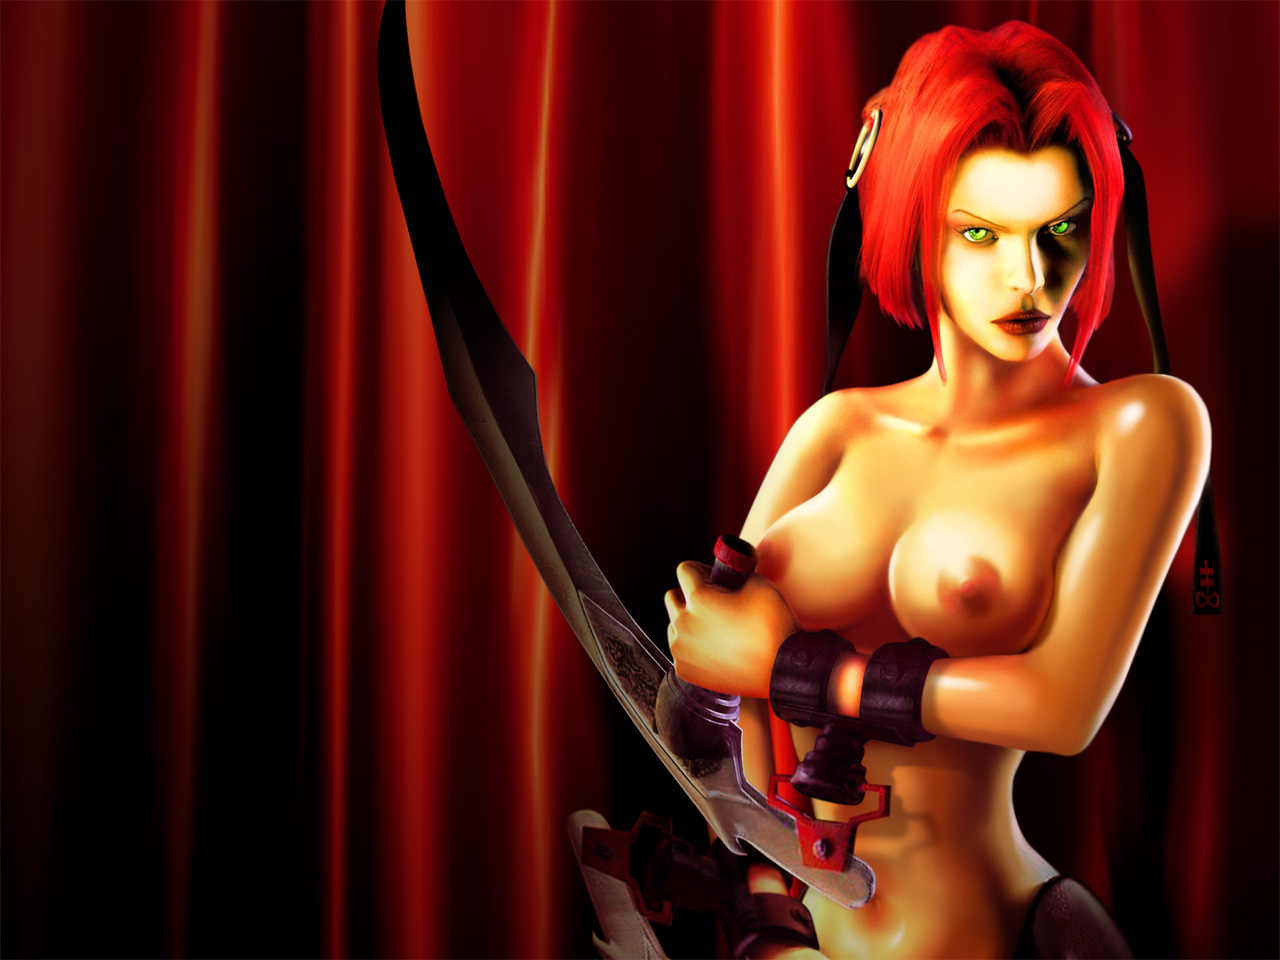 Bloodrayne 2 fuck patch sex ameteur girls